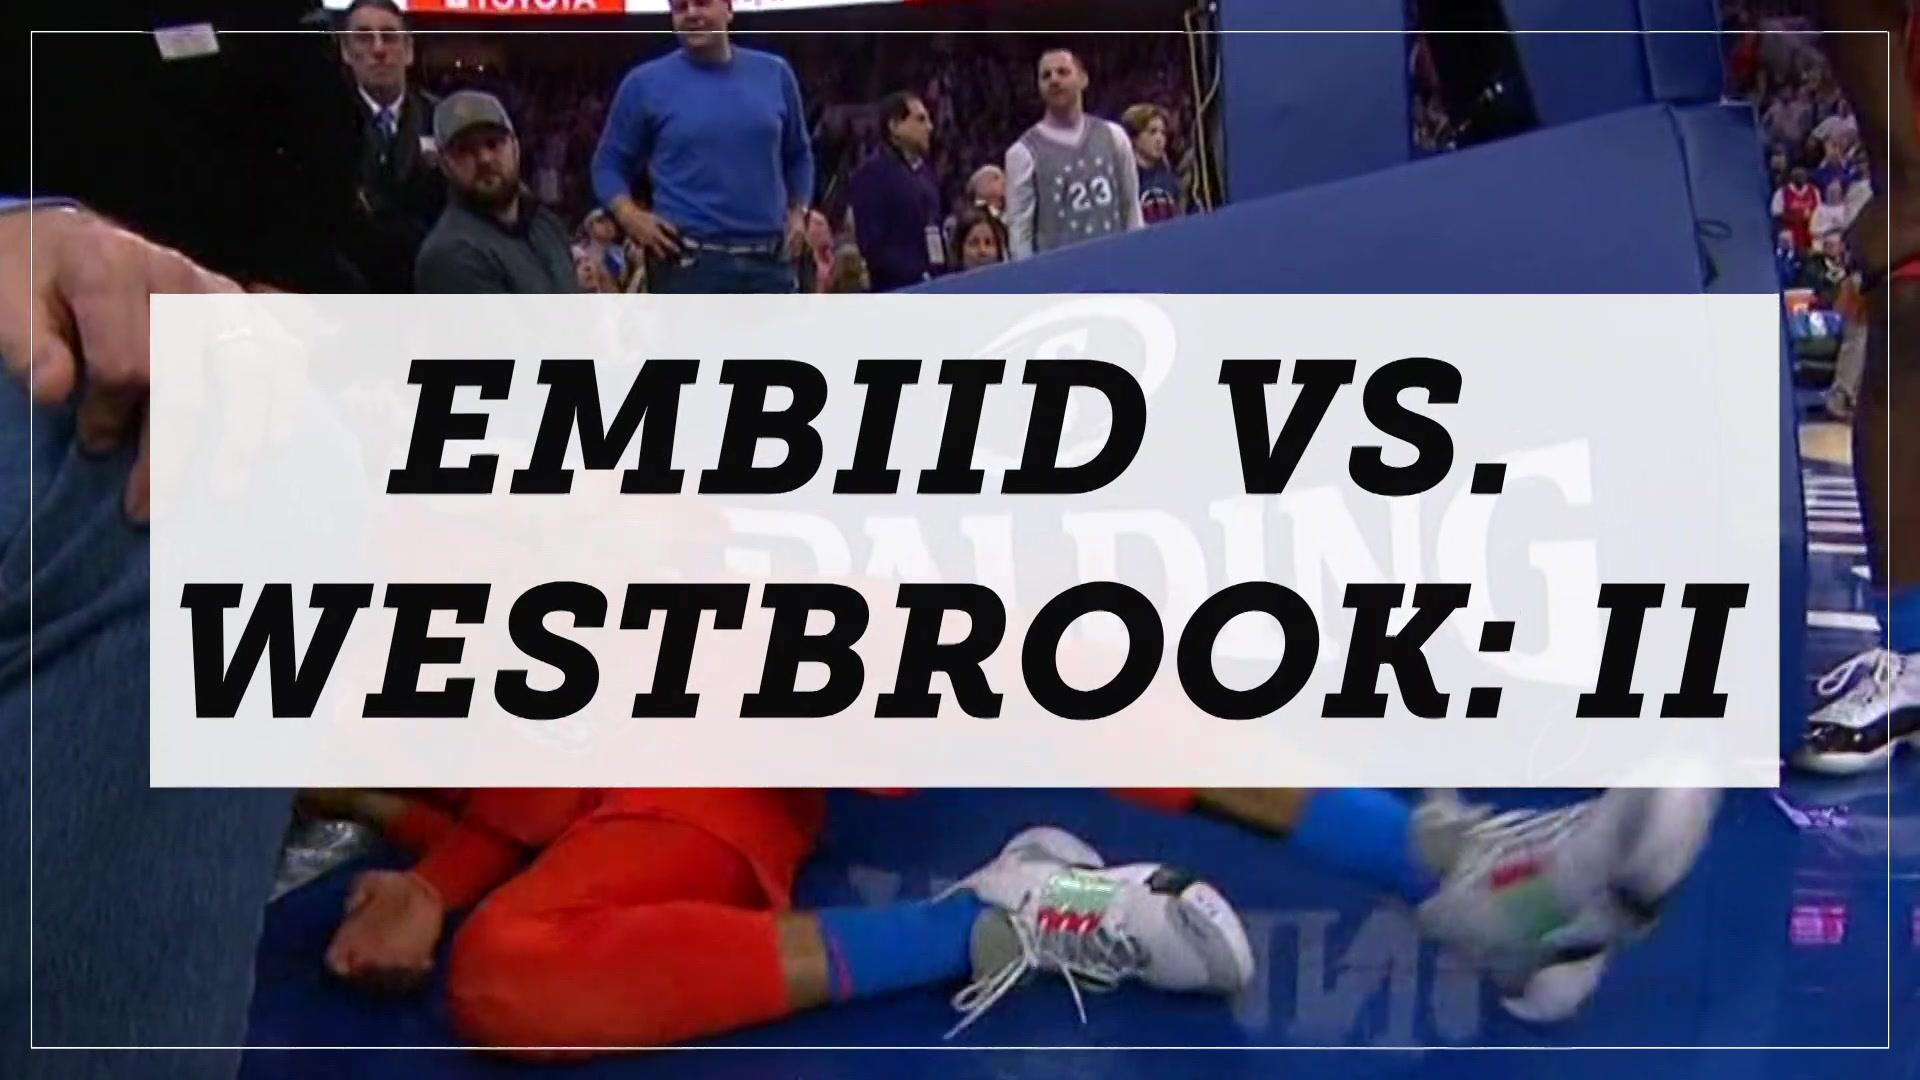 Joel Embiid and Russell Westbrook clearly not friends